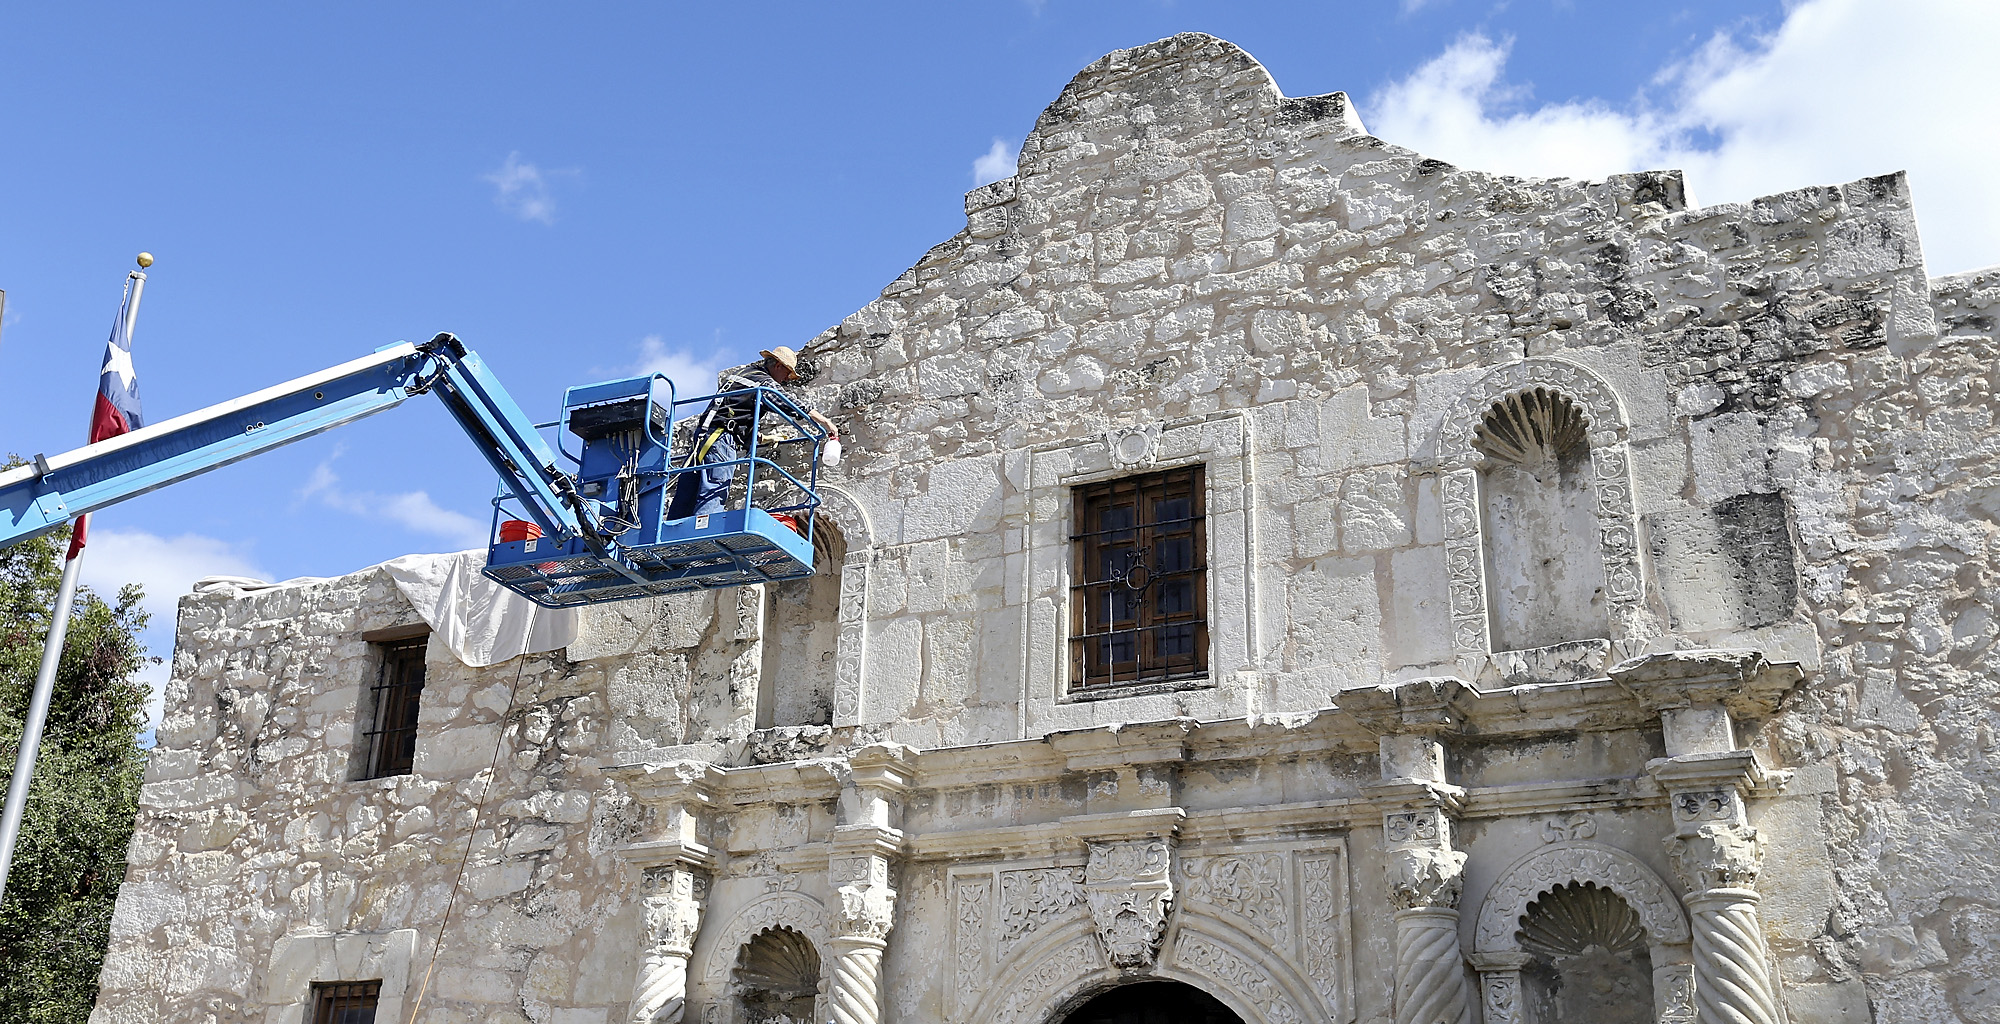 There S A Hole In The Alamo Wall San Antonio Express News